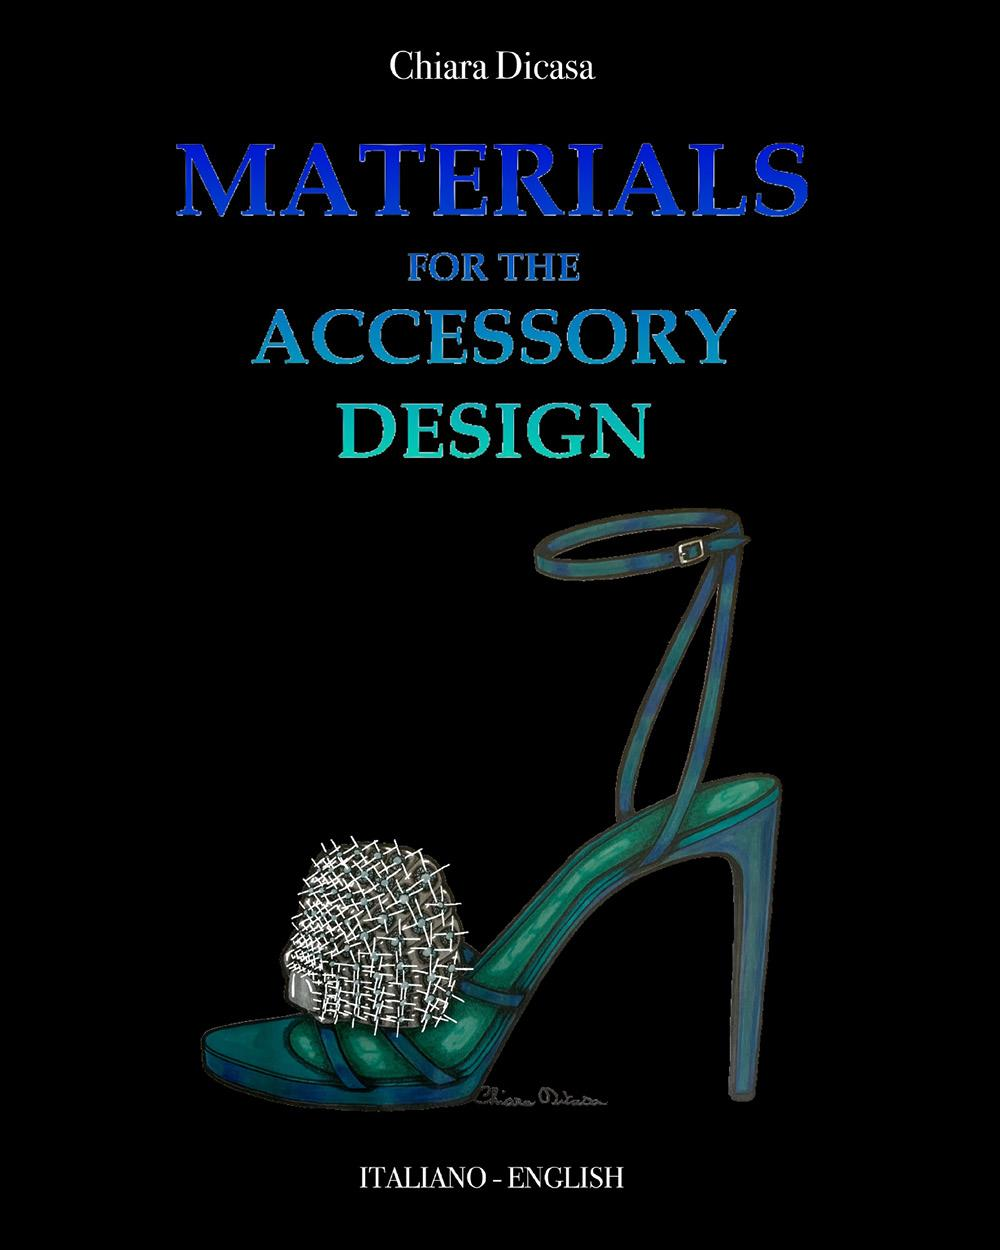 Materials for the accessory design